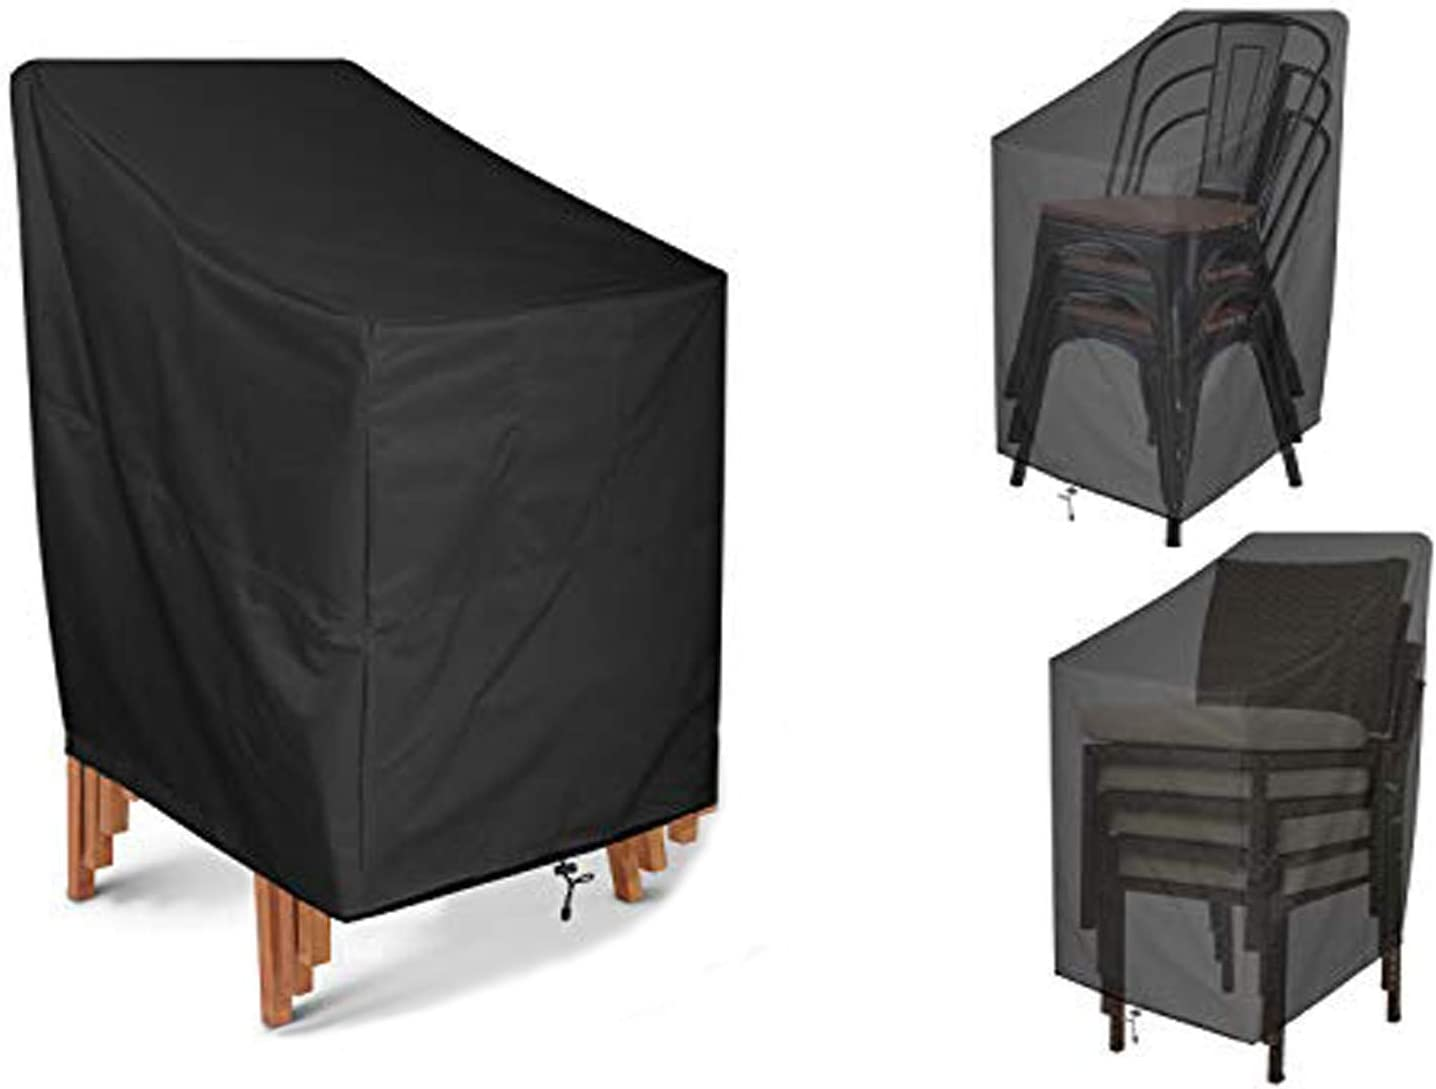 JJCKHE Patio Chair Cover, Heavy Duty High Back Chair Cover Durable & Waterproof Outdoor Furniture Stackable Chair/Veranda Lounge Deep Seat Cover Protection Cover, Black